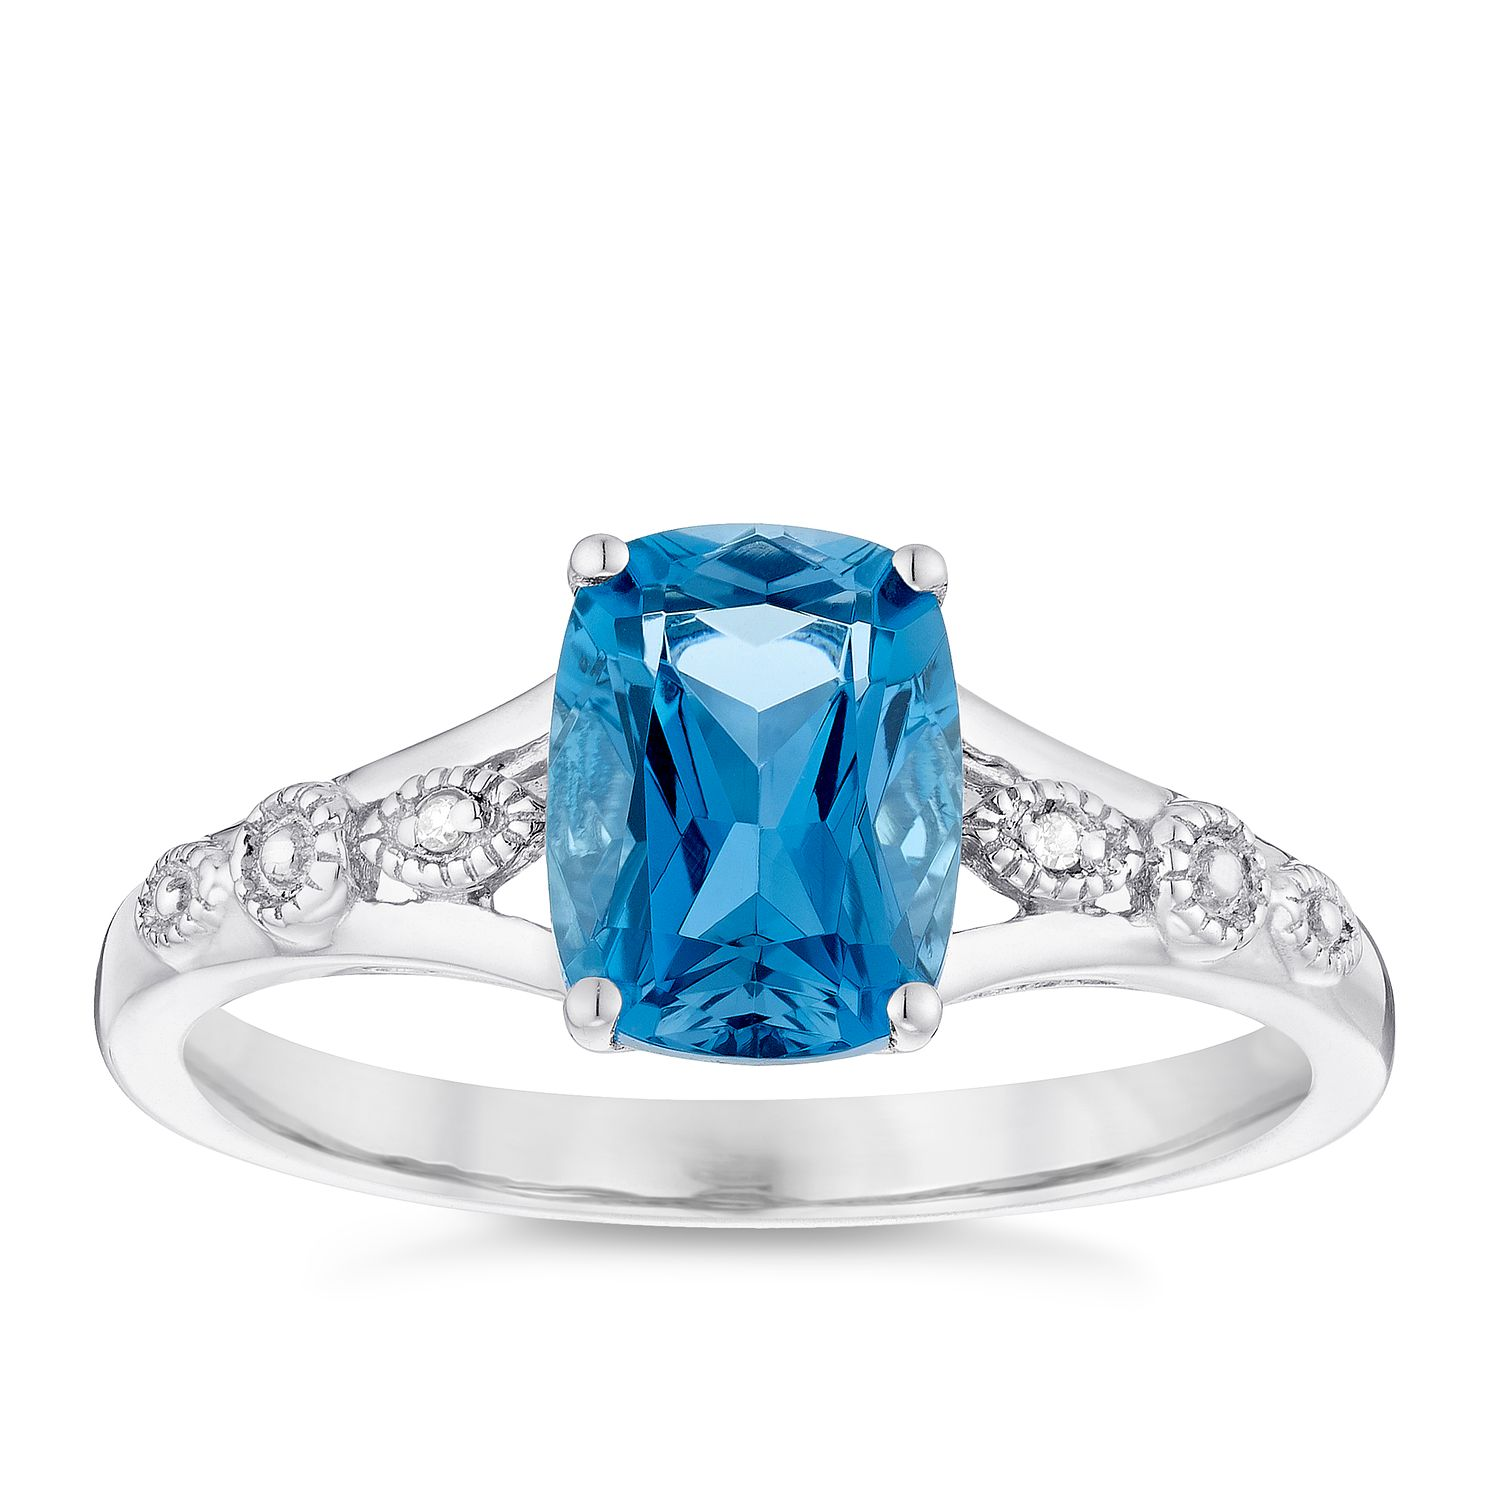 Sterling Silver London Blue Topaz & Diamond Ring - Product number 4722000